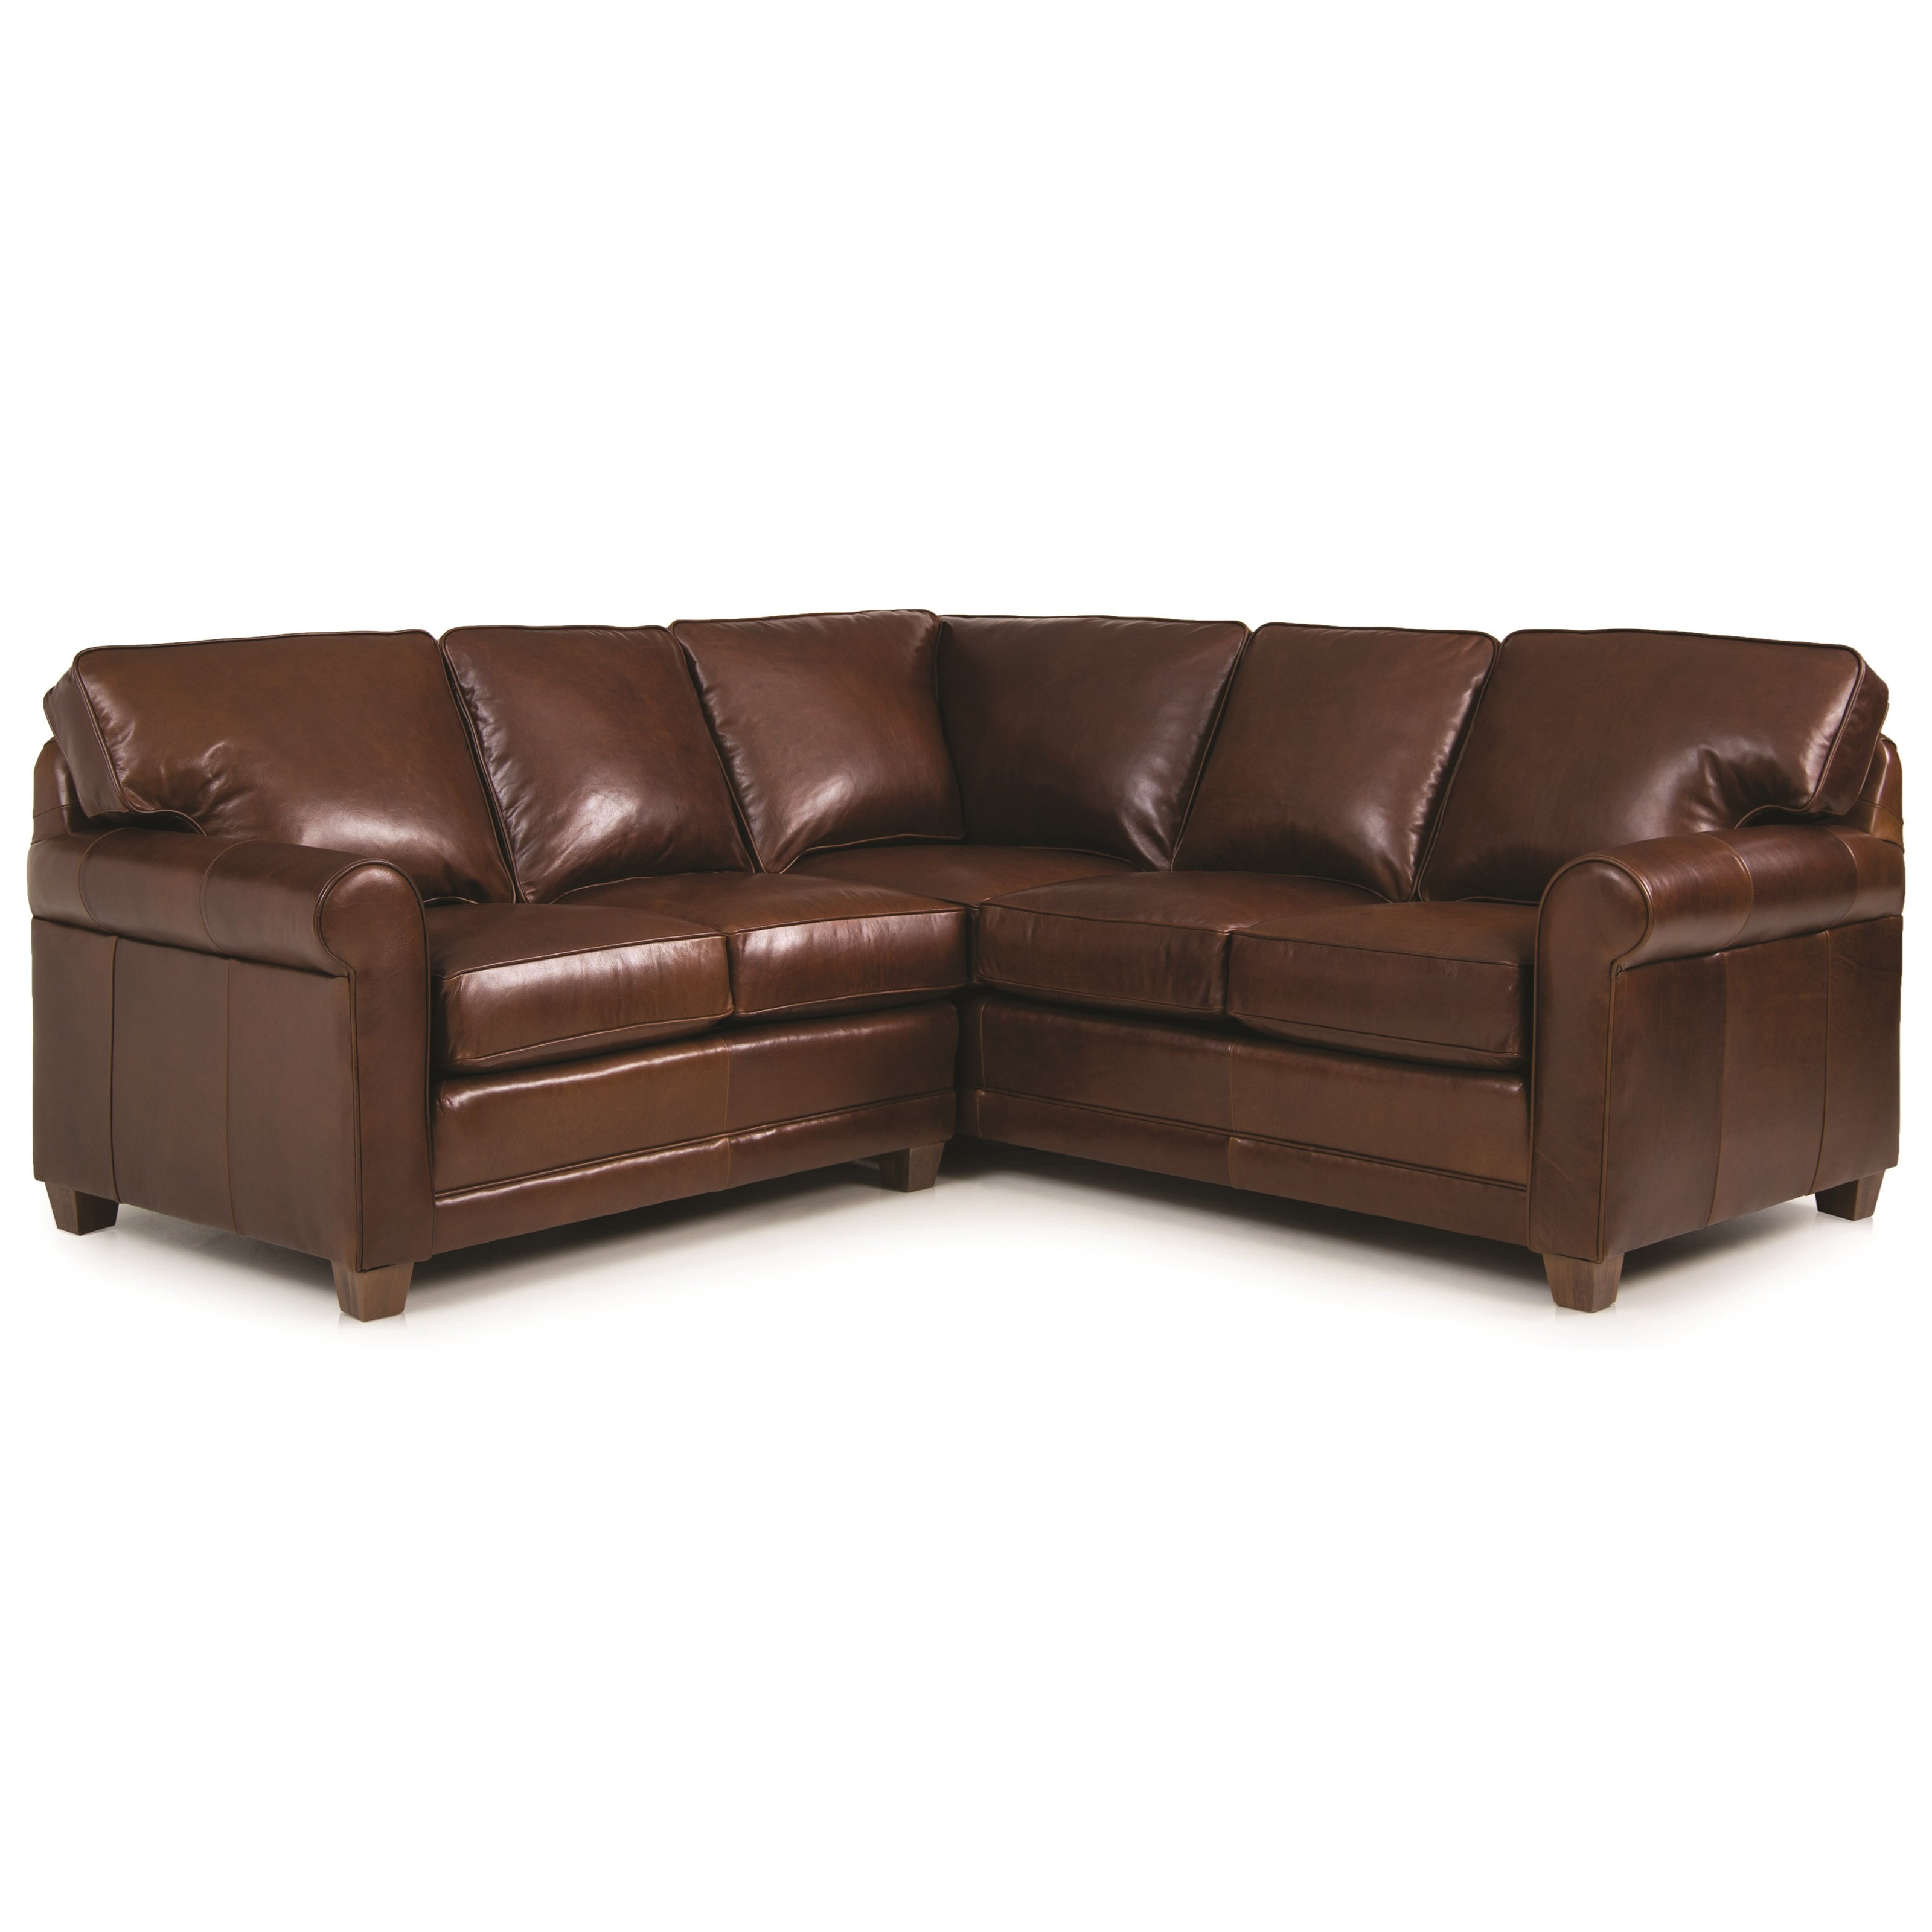 366 2-pc Sectional by Smith Brothers at Sprintz Furniture